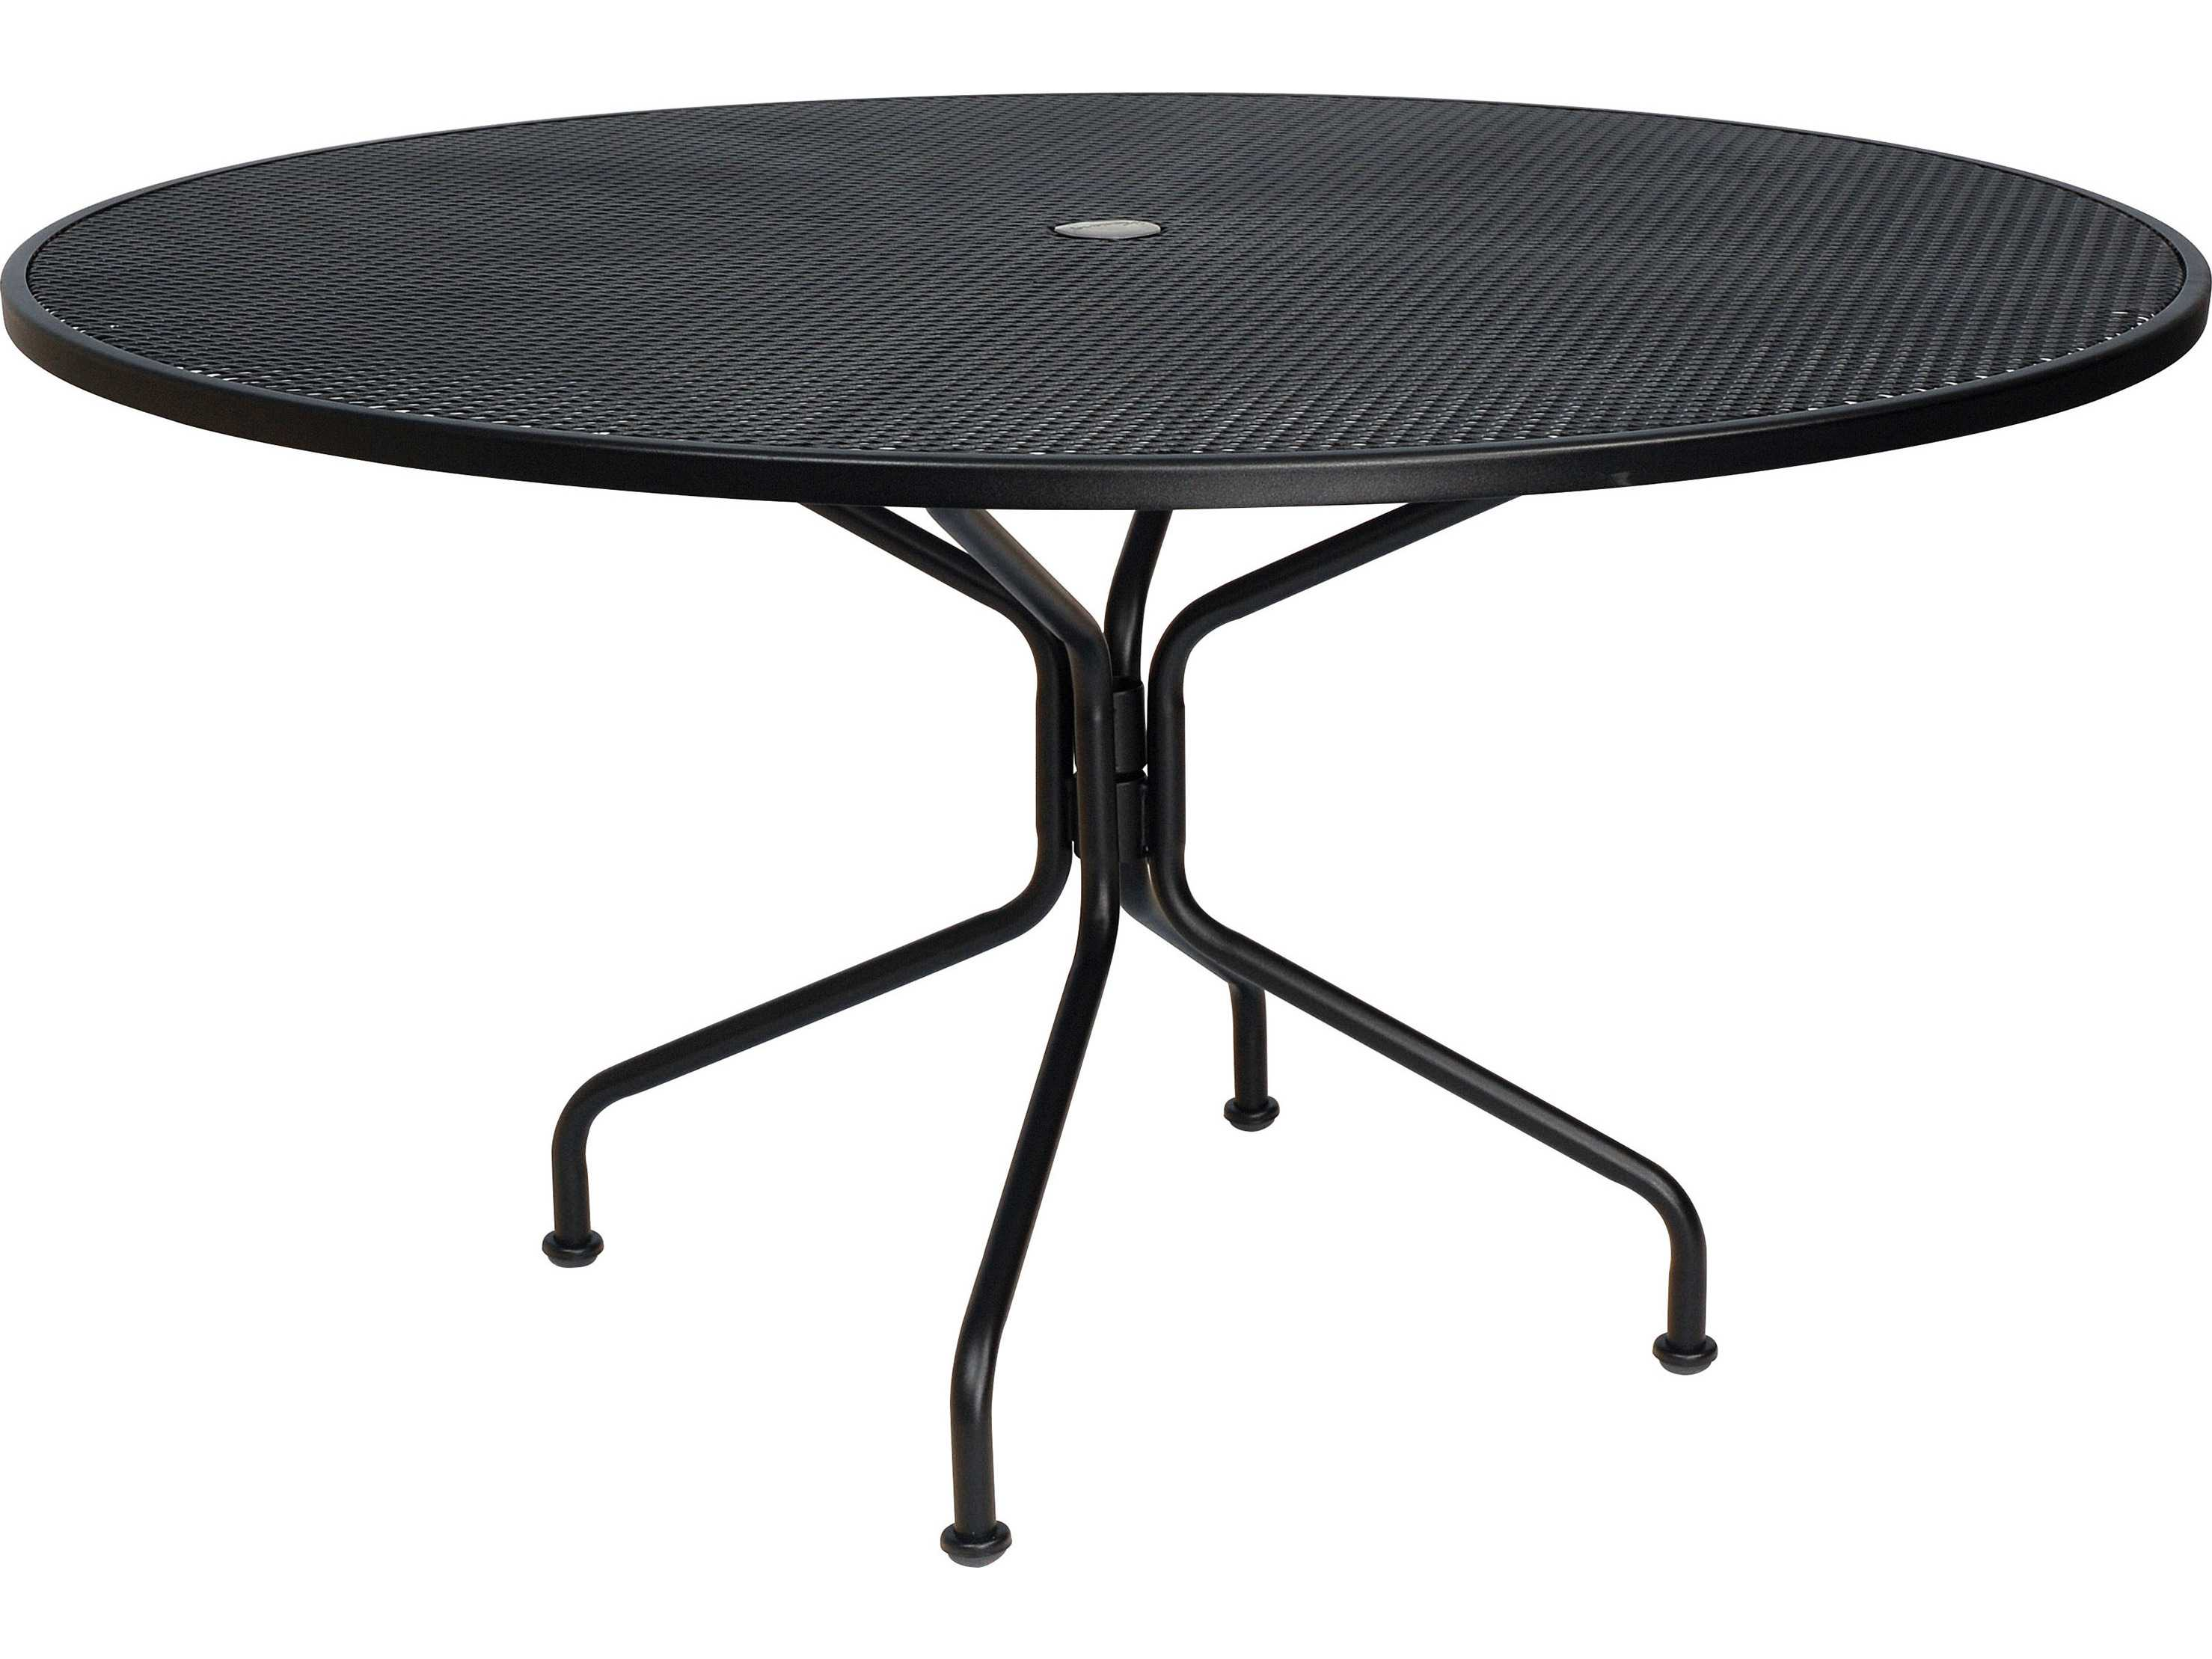 Woodard Wrought Iron 54 Round 8Spoke Table with Umbrella Hole